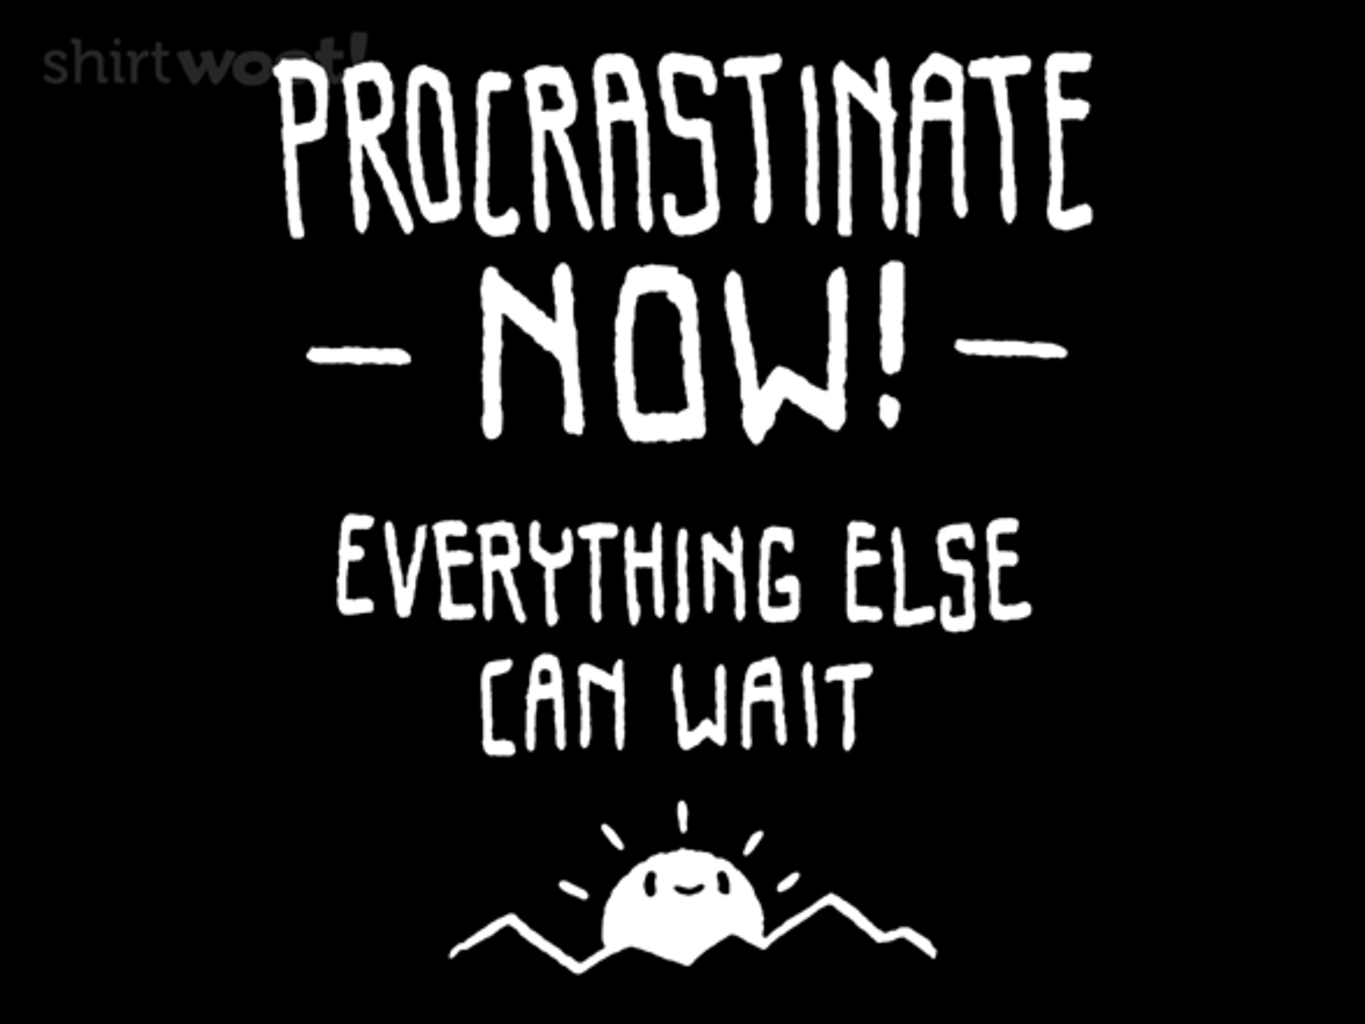 Woot!: Everything Else Can Wait